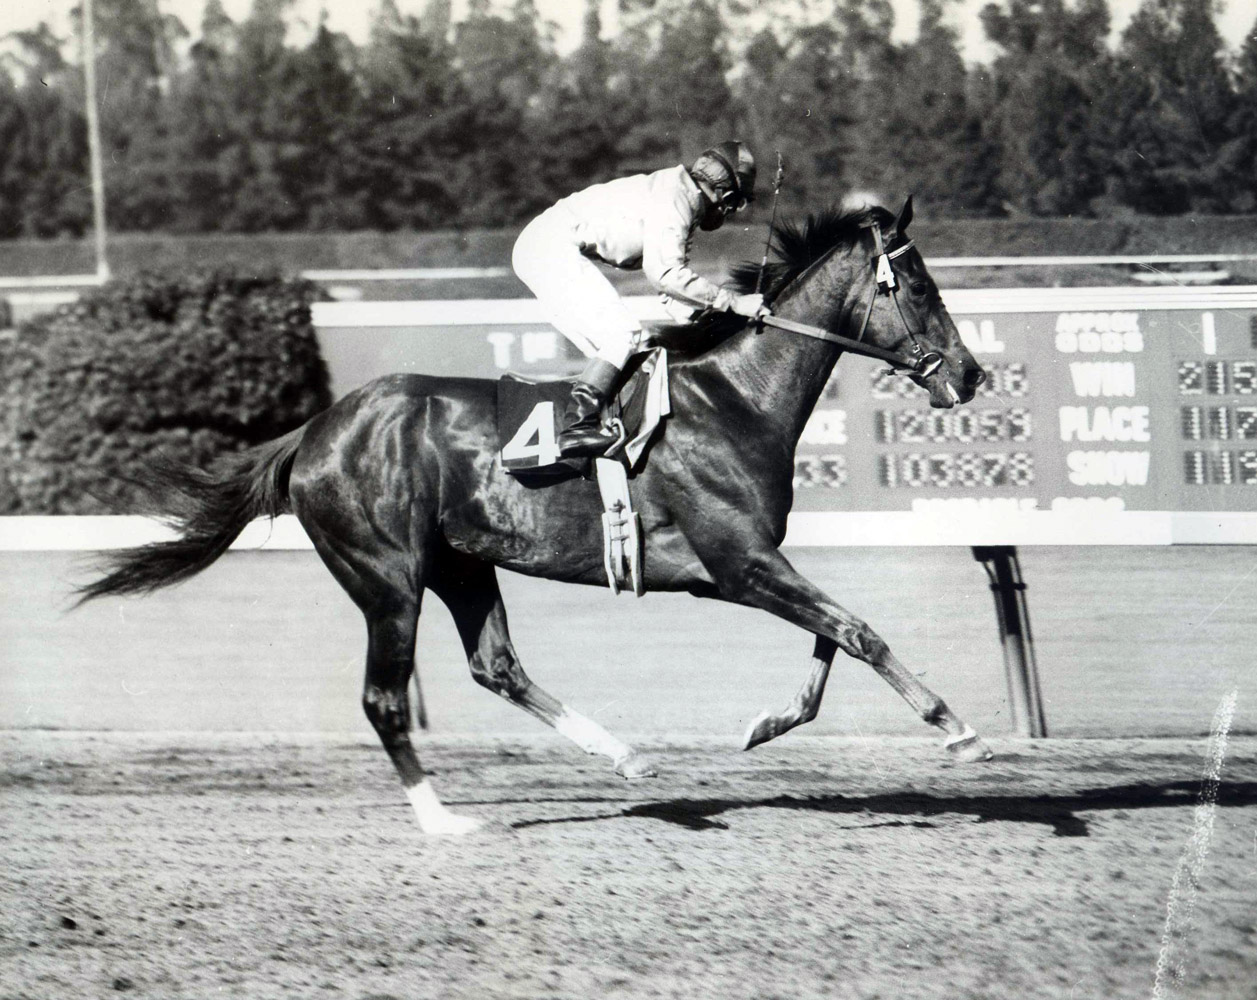 Bill Boland and Silver Spoon winning the 1959 Cinema Handicap at Hollywood Park (Museum Collection)